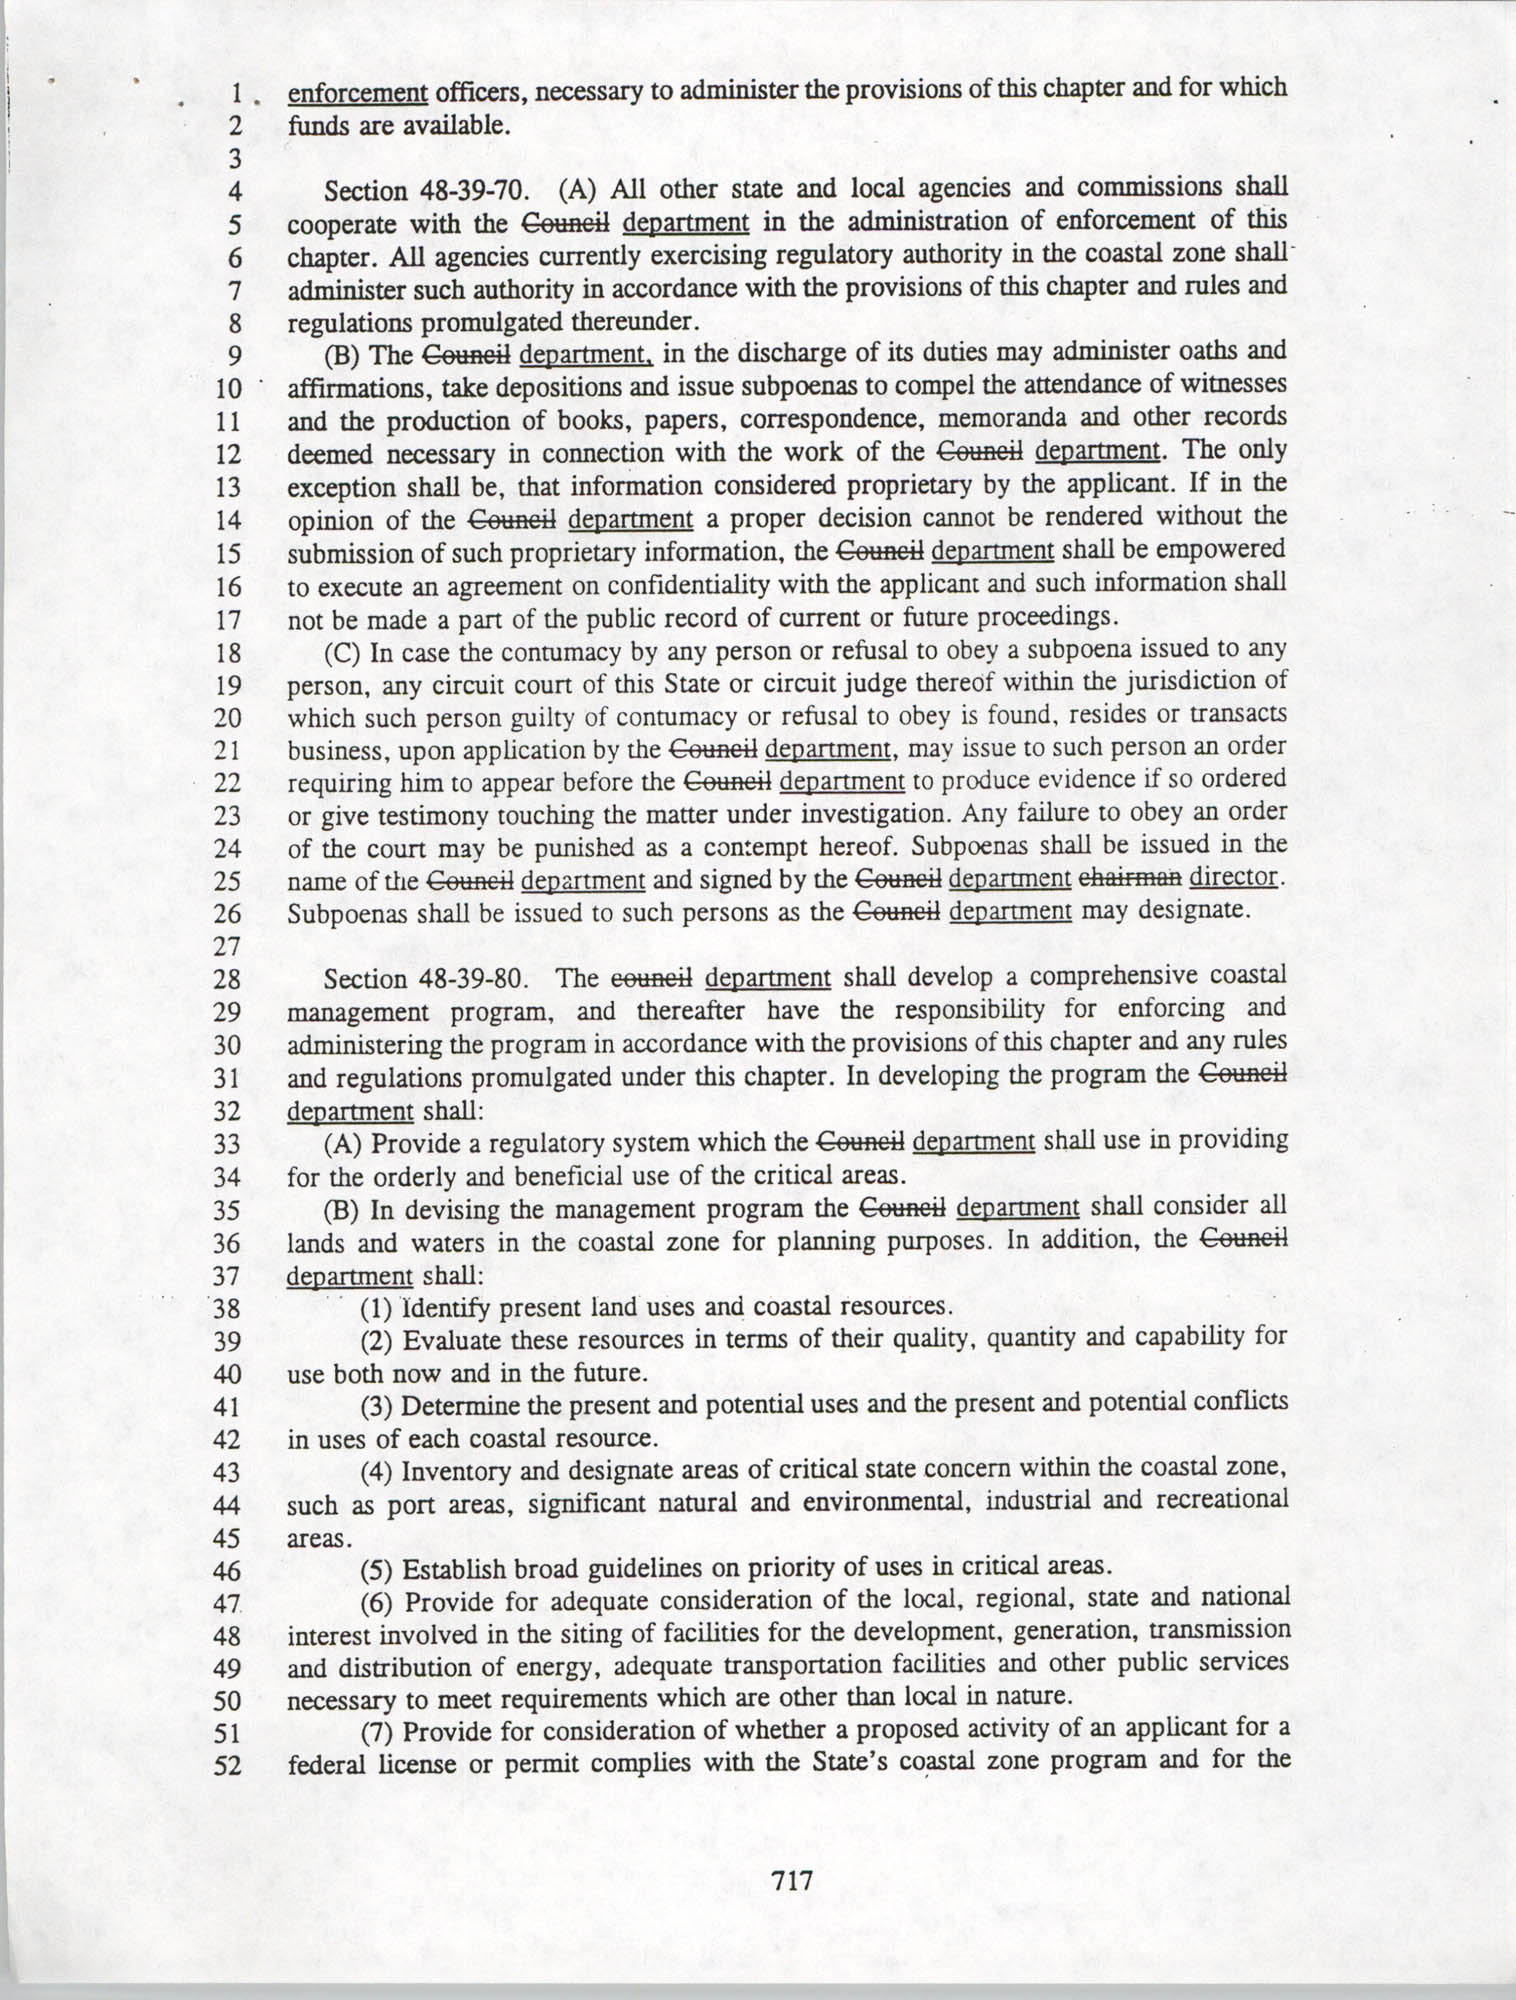 Restructuring Bill, Page 717